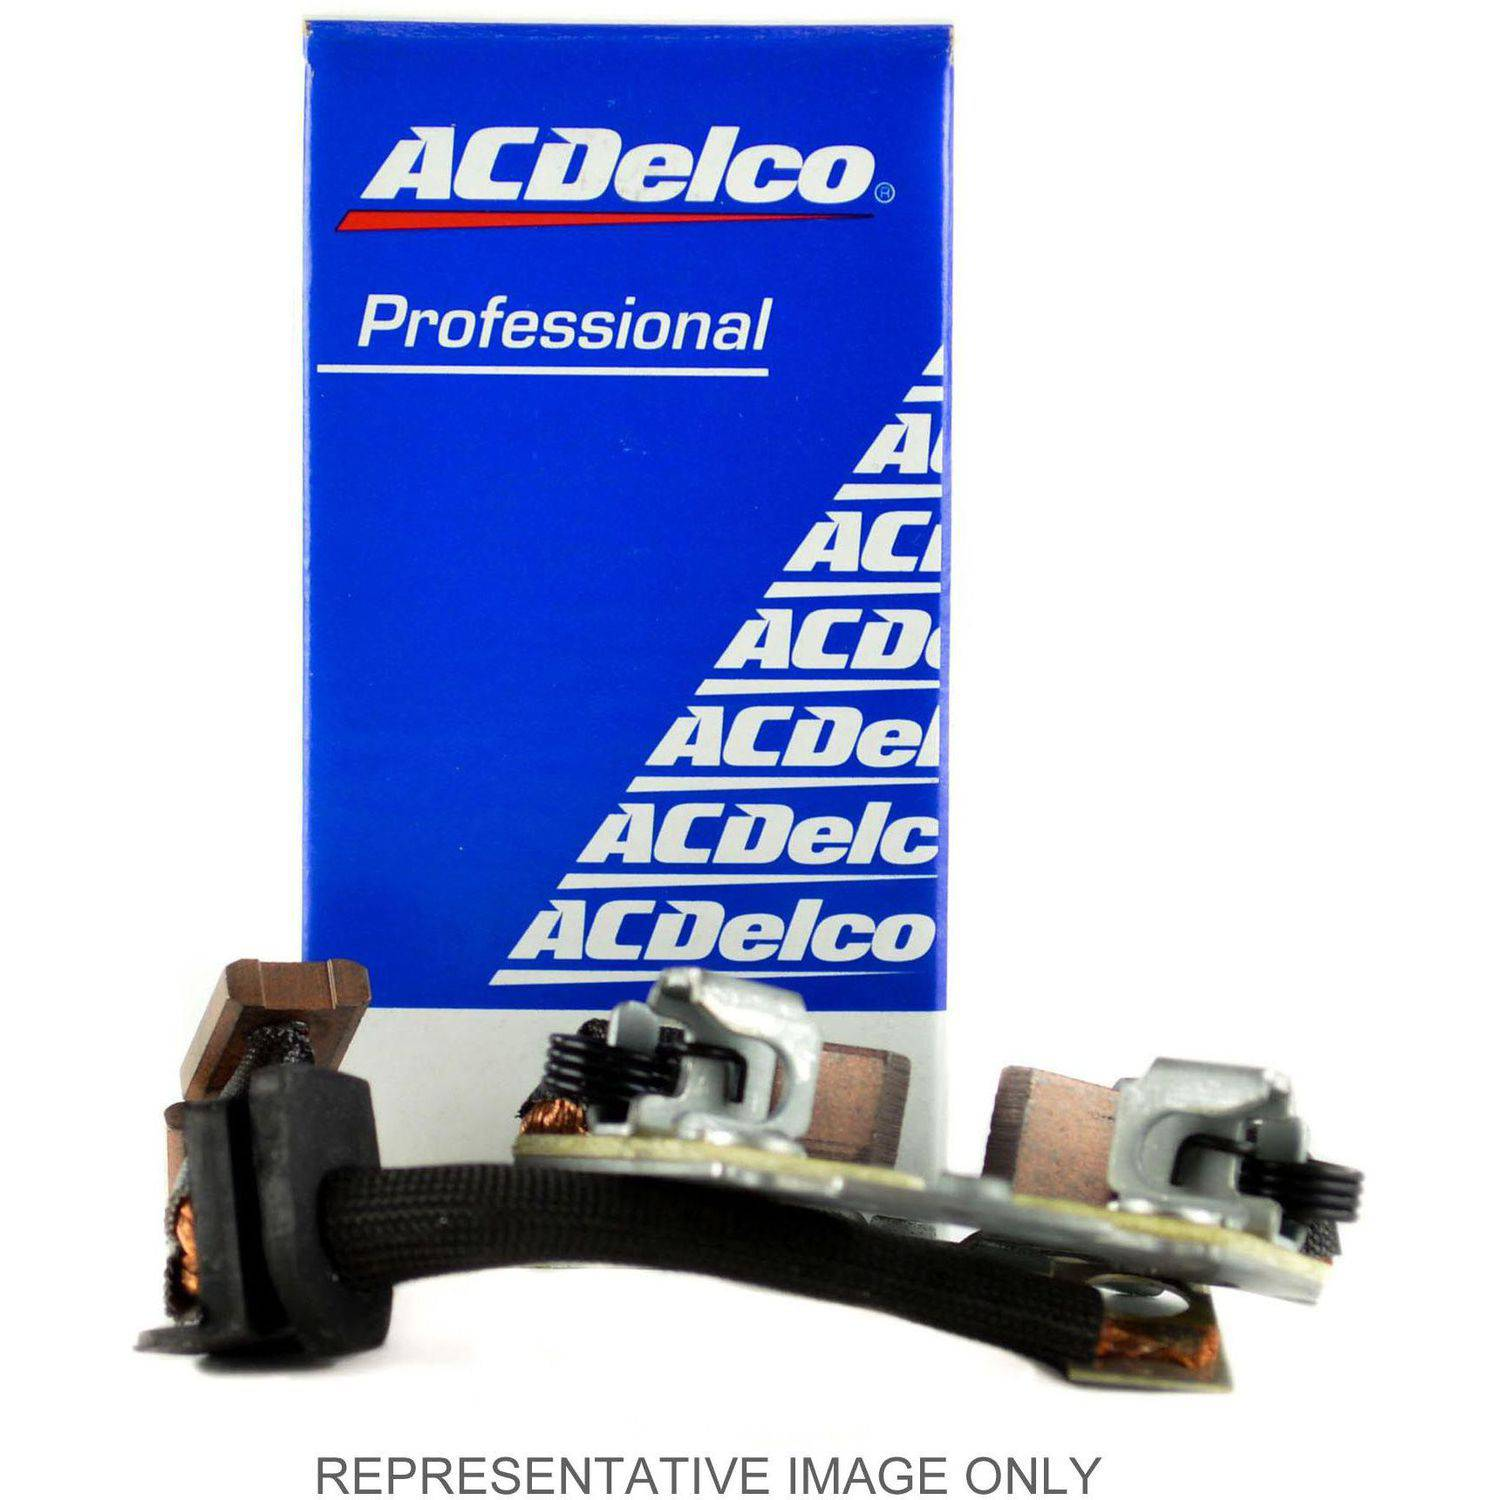 ACDelco Automotive Replacement F736 Alternator Brush Kit